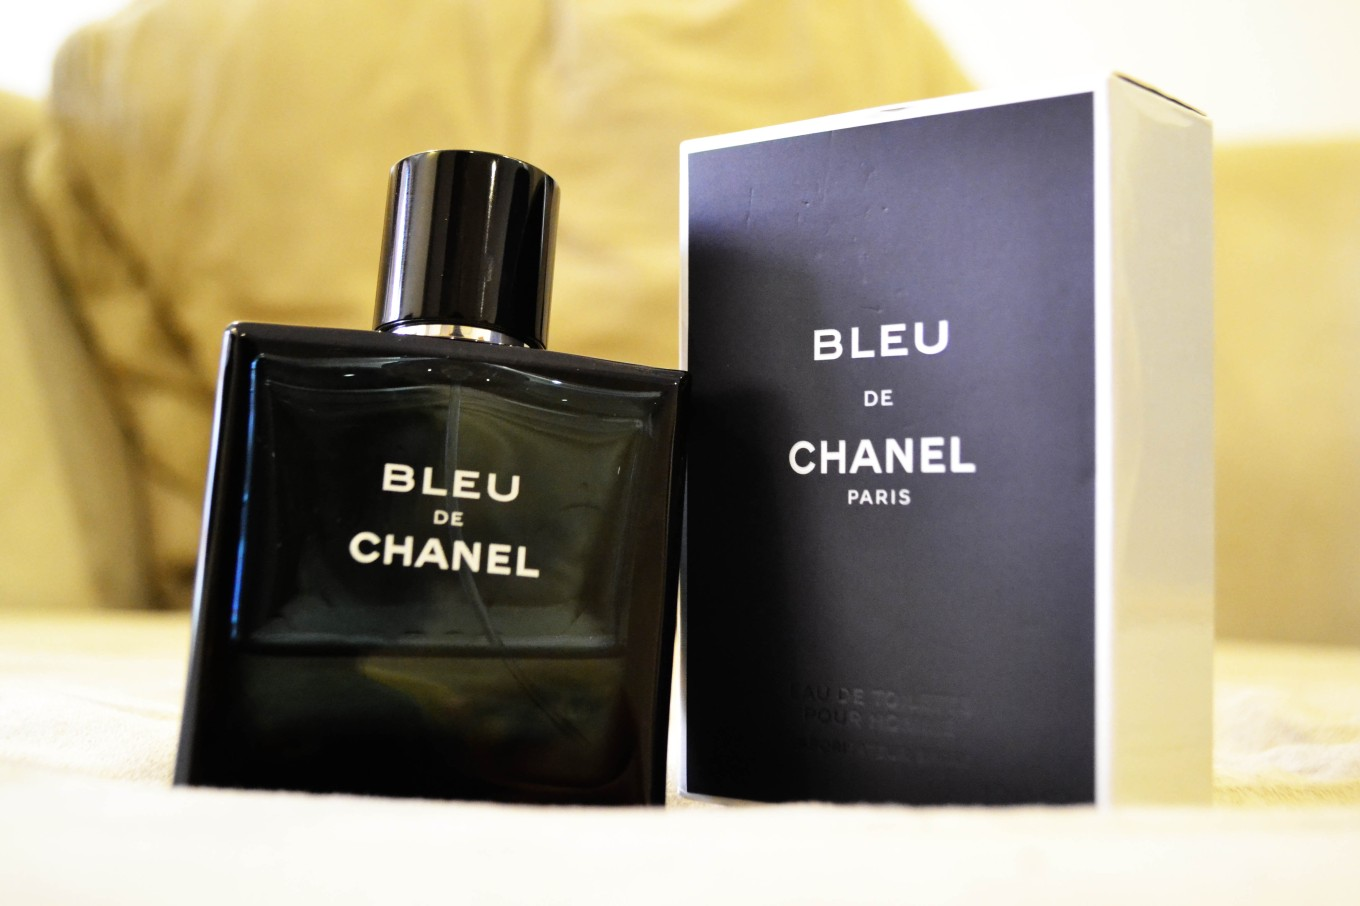 ac93e743f57 Bleu de Chanel is a classy and contemporary fragrance from Chanel which was  launched in 2010. I have a 50ml (1.7 FL.OZ) EDT bottle